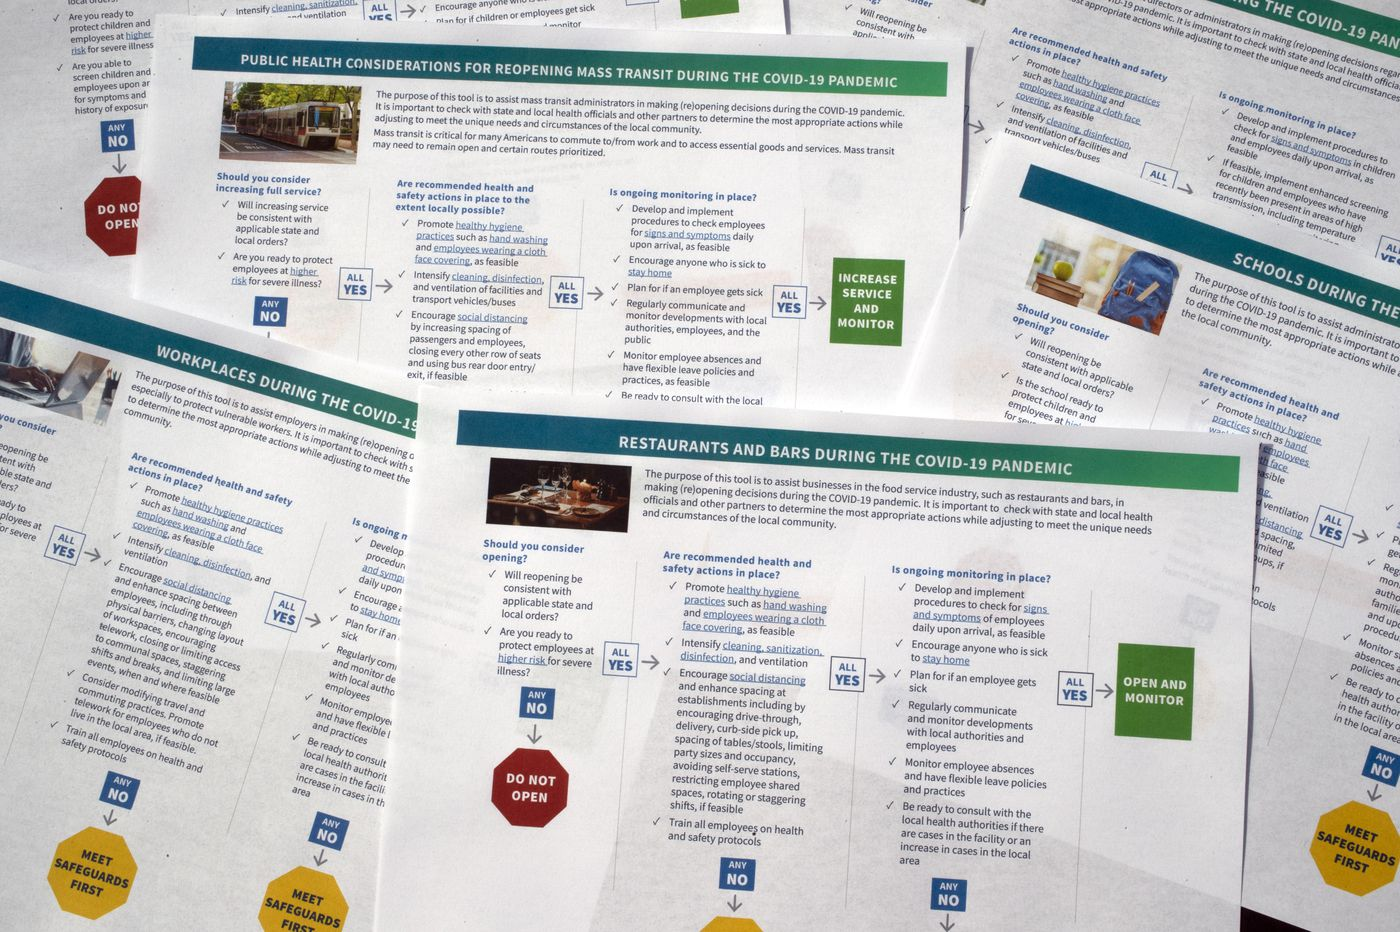 CDC offers brief checklists to guide businesses, schools, and others on reopening